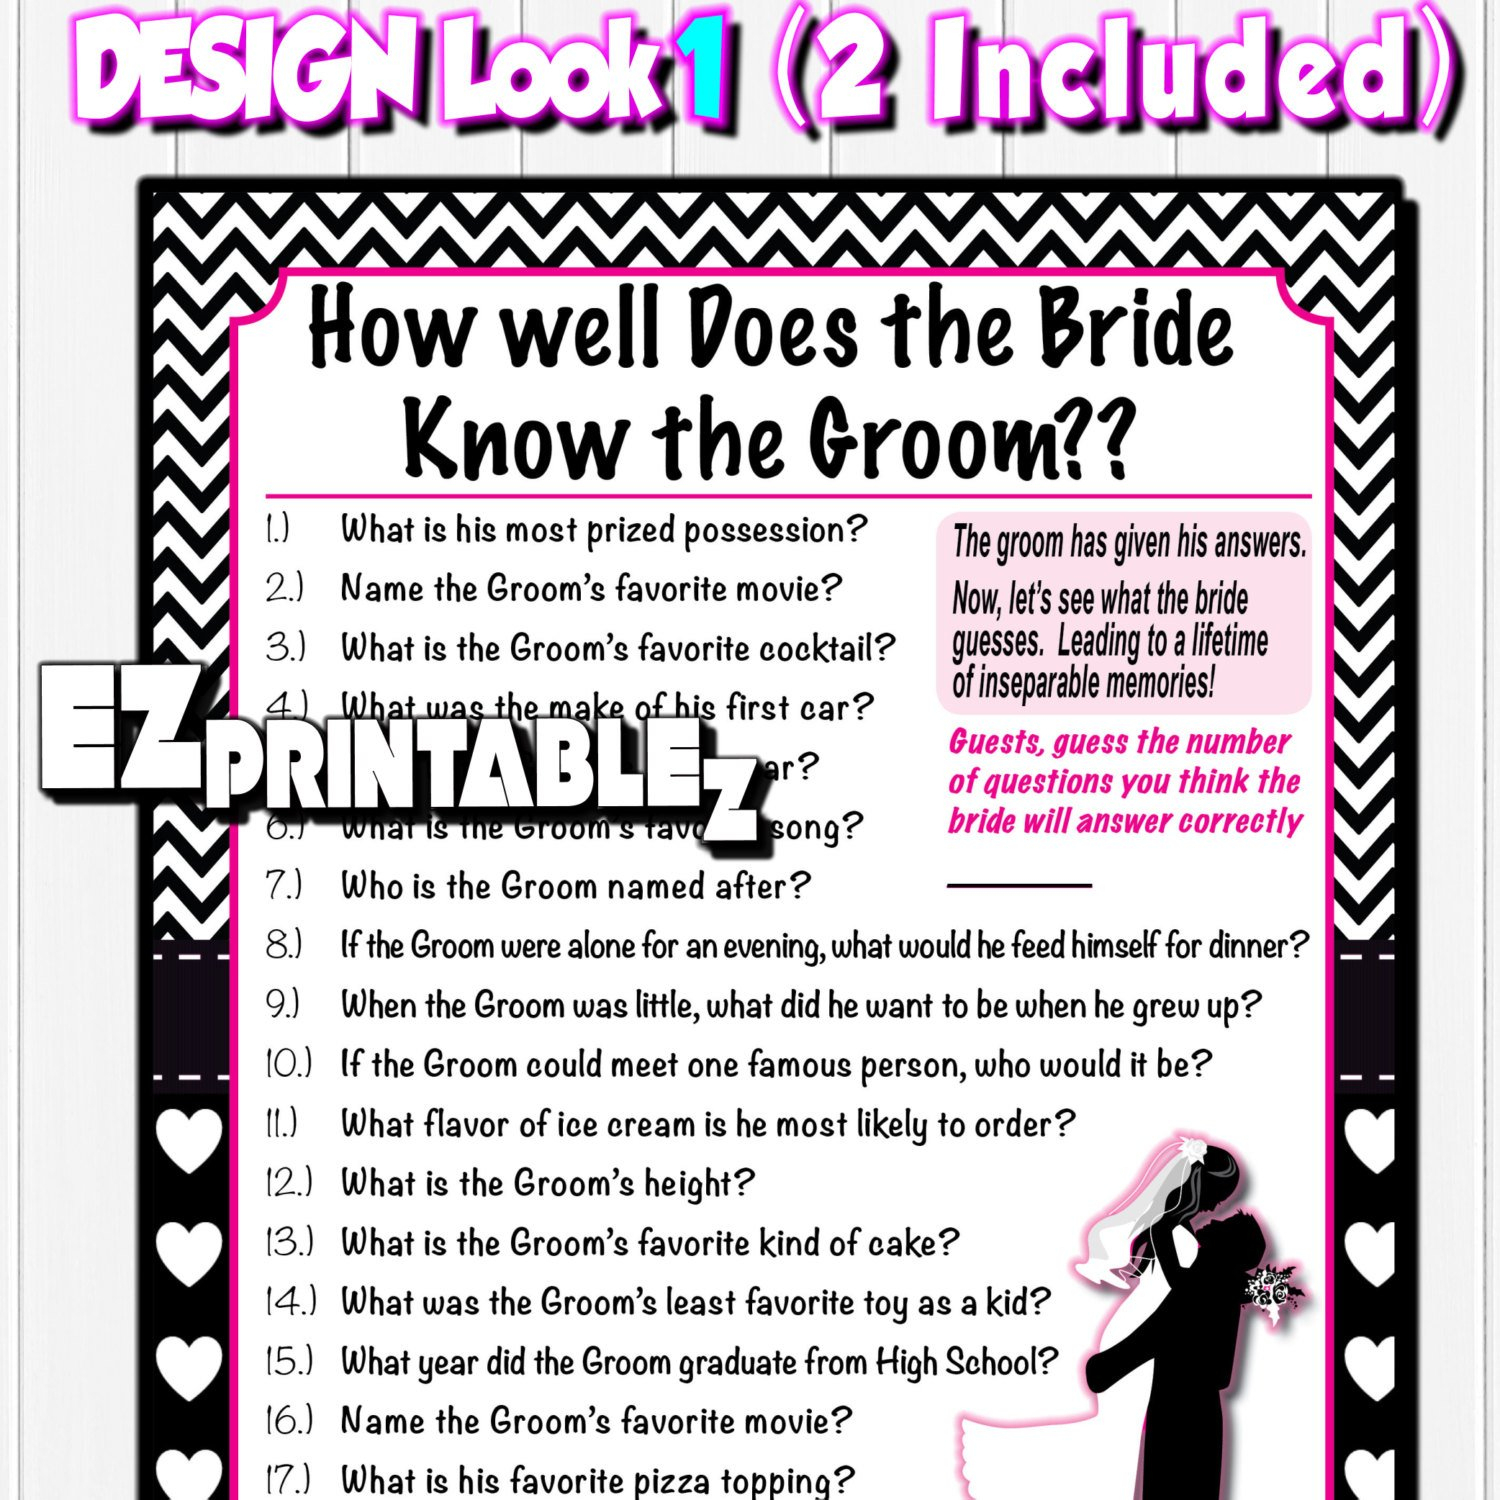 Printable Bridal Shower Game How Well Does The Bride Know The Groom - How Well Does The Bride Know The Groom Free Printable